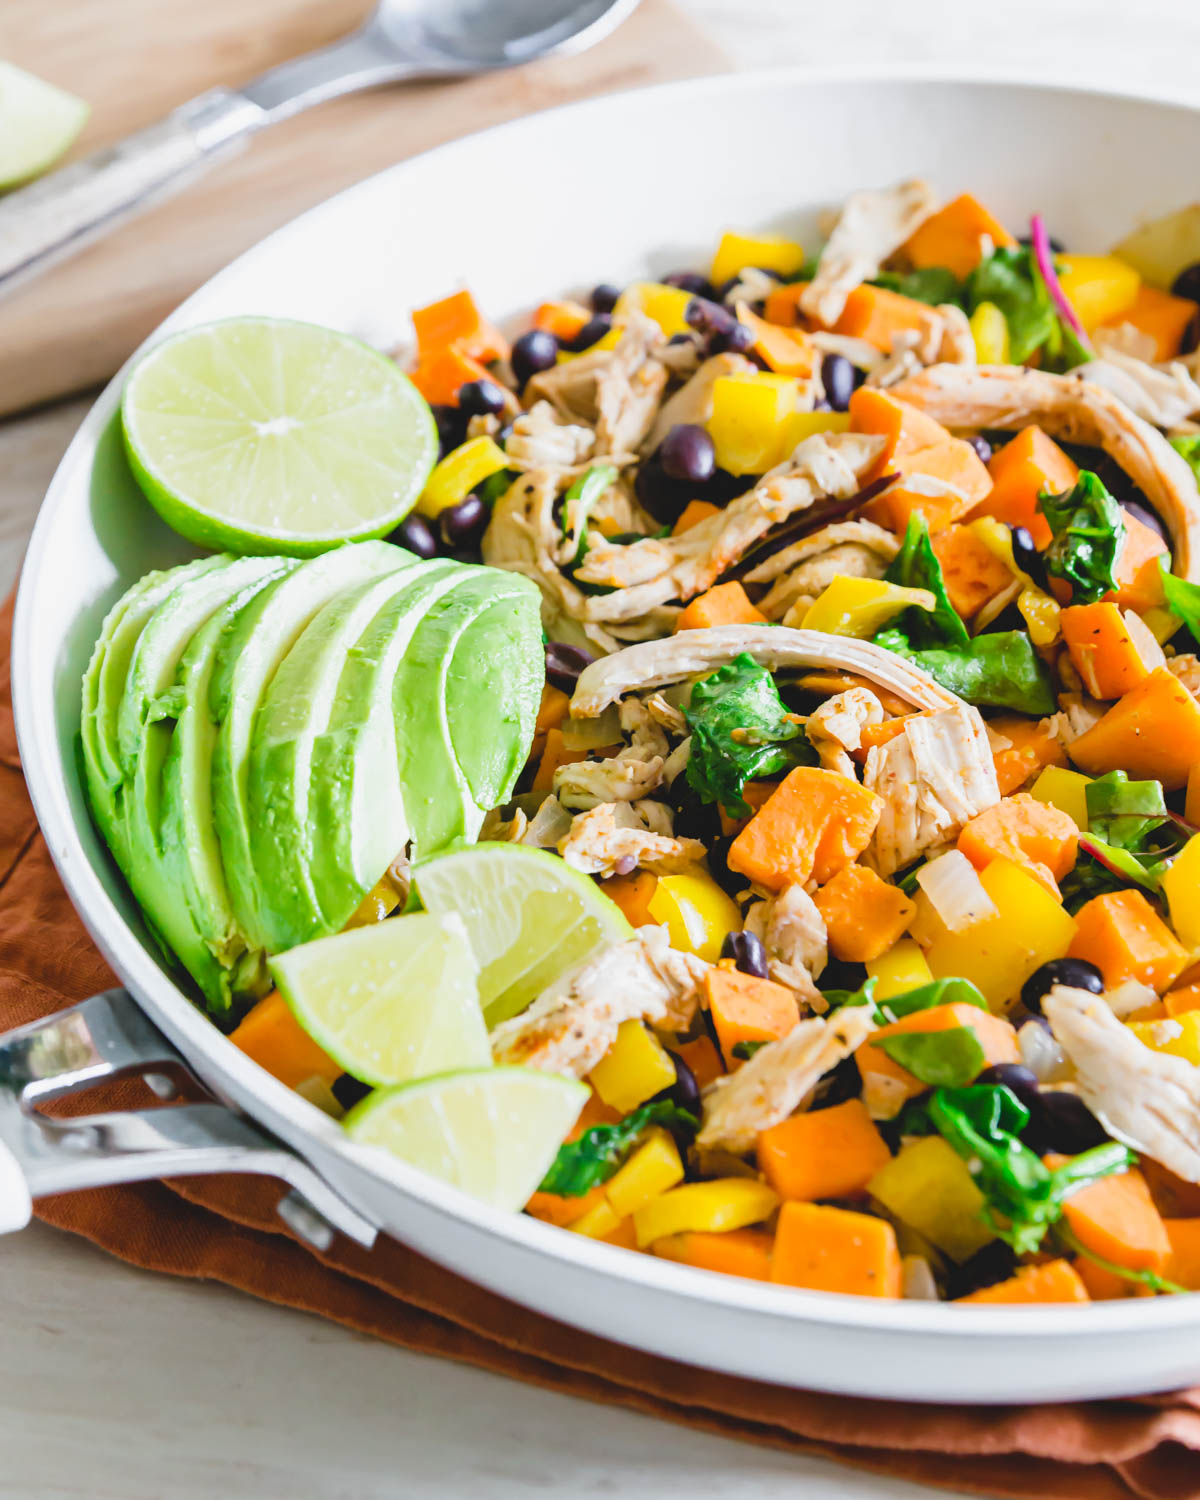 This turkey sweet potato skillet is a healthy way to repurpose leftover turkey (or chicken) with sweet potatoes, black beans, peppers, greens and onions.